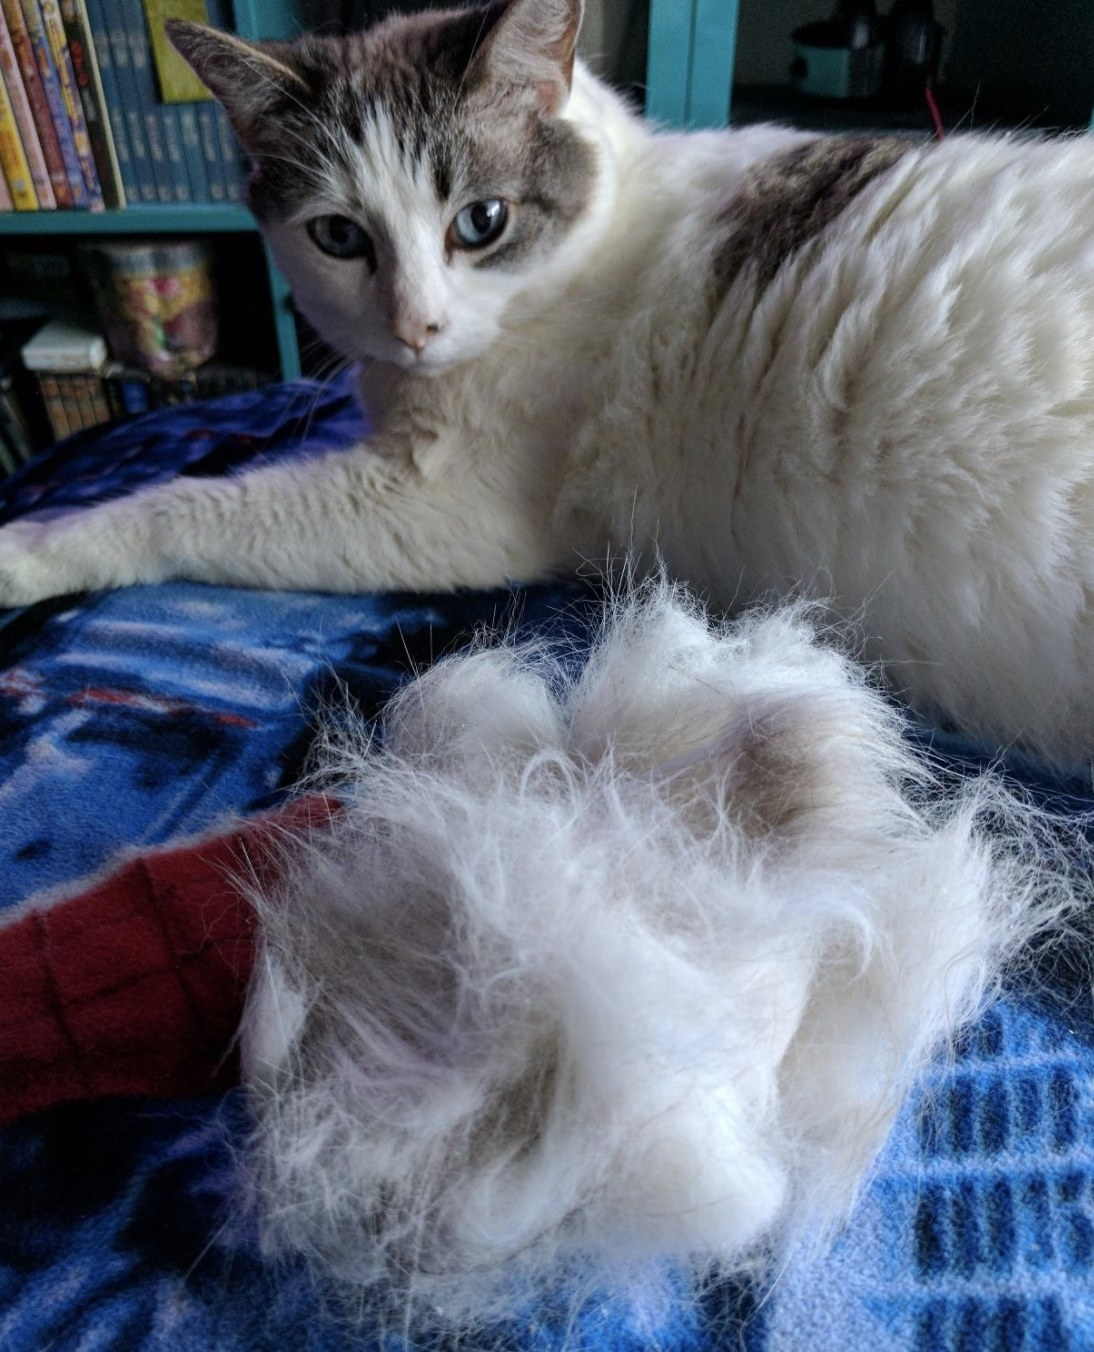 A white and grey cat sitting next to a huge ball of fur